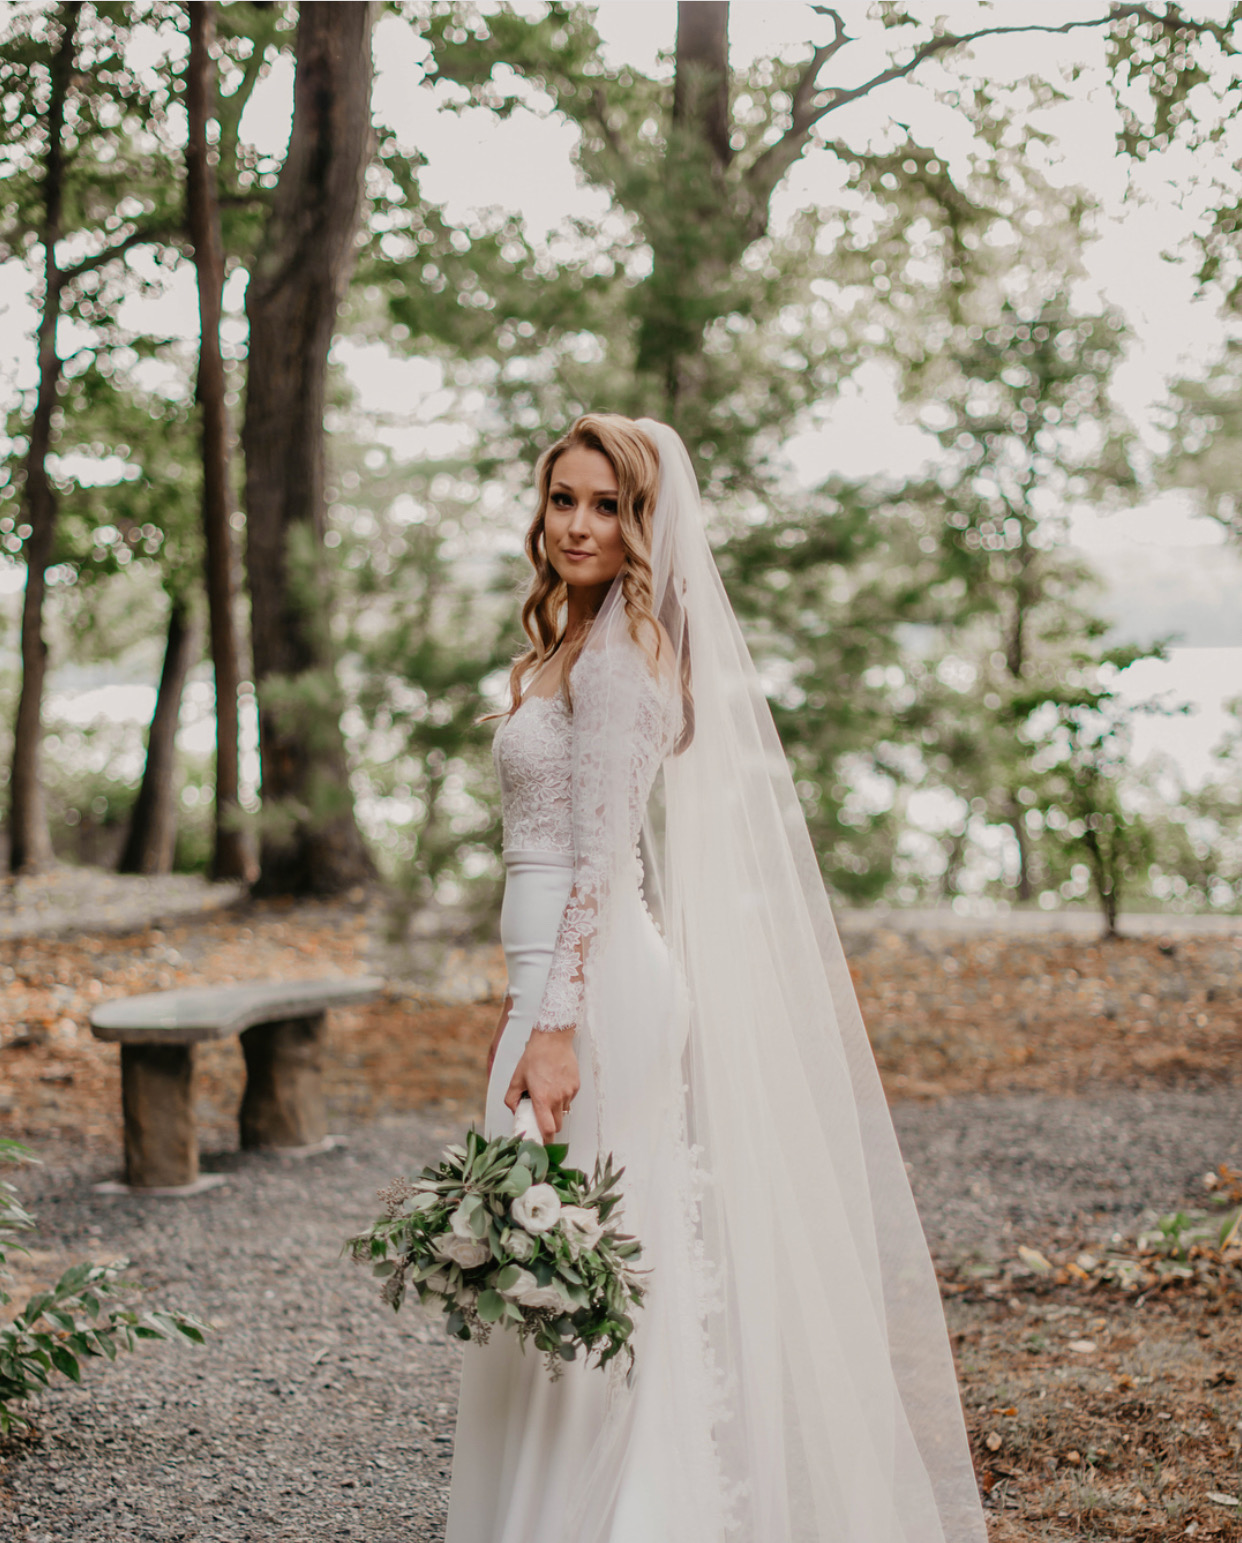 makeup-by-mehry-bridal-engagement-editorial-print-professional-makeup-course-artistry-occasion-wedding-runway-lessons-events-foxboro-9.JPG